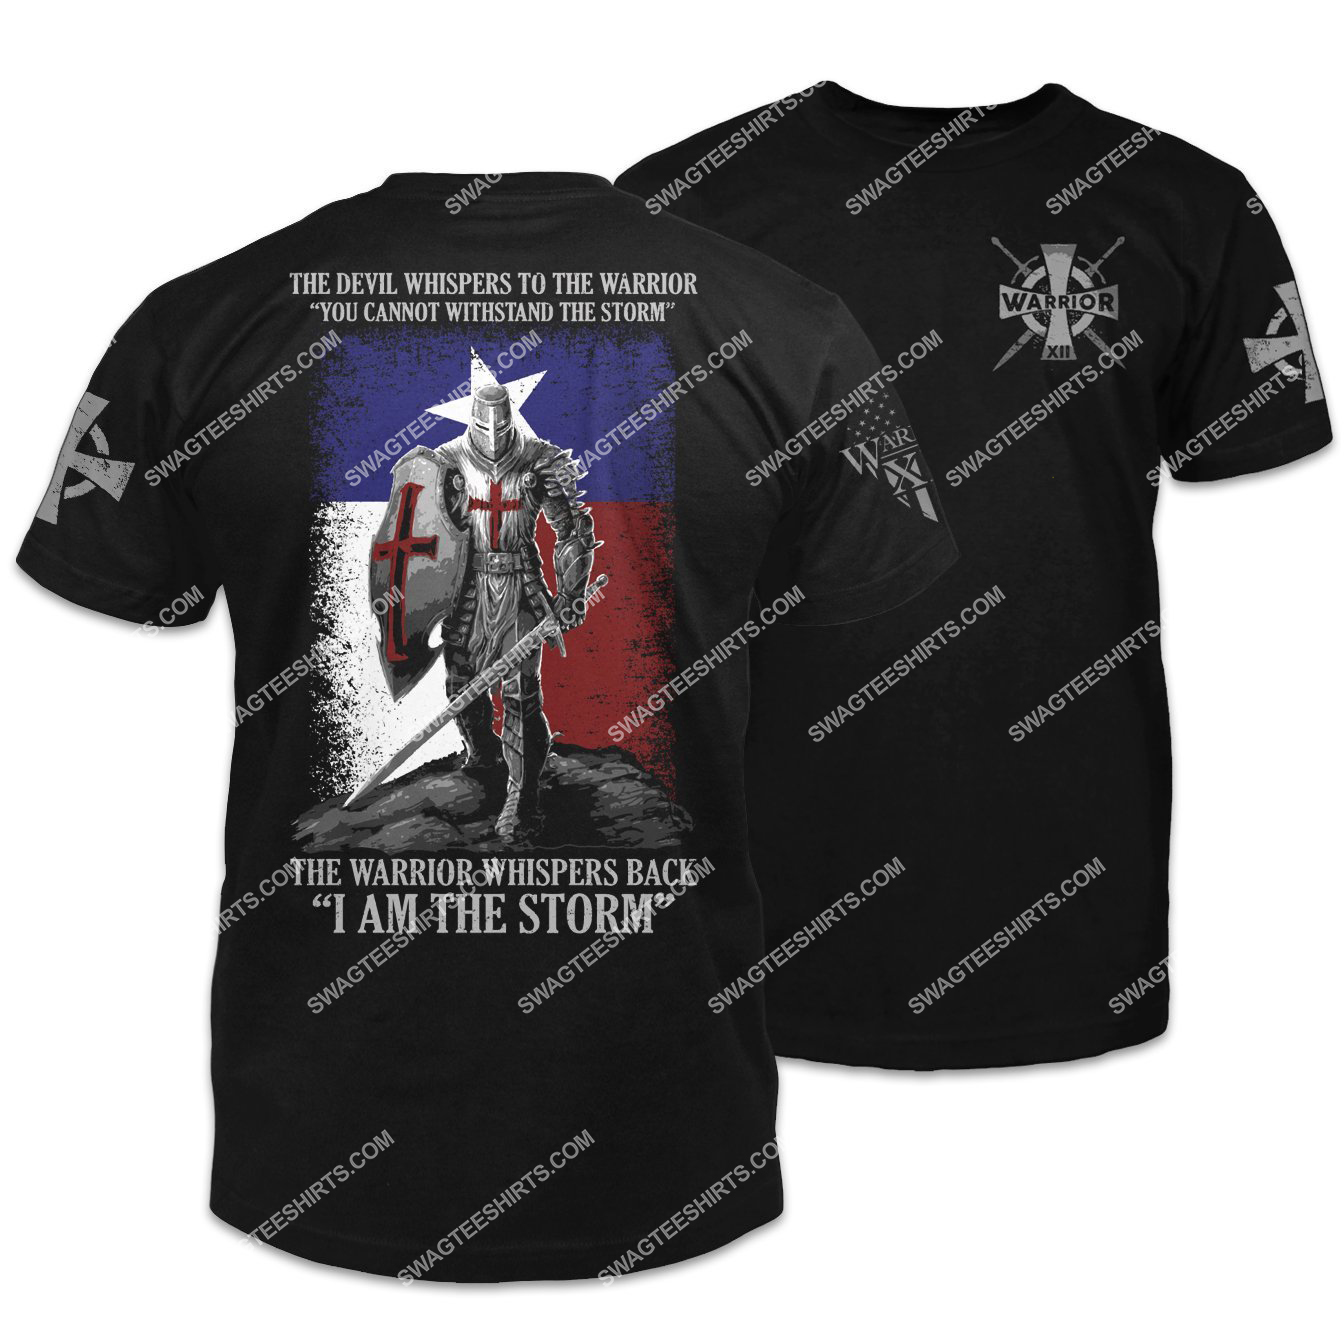 the devil whispers to the warrior you cannot withstand the storm knights templar shirt 1 - Copy